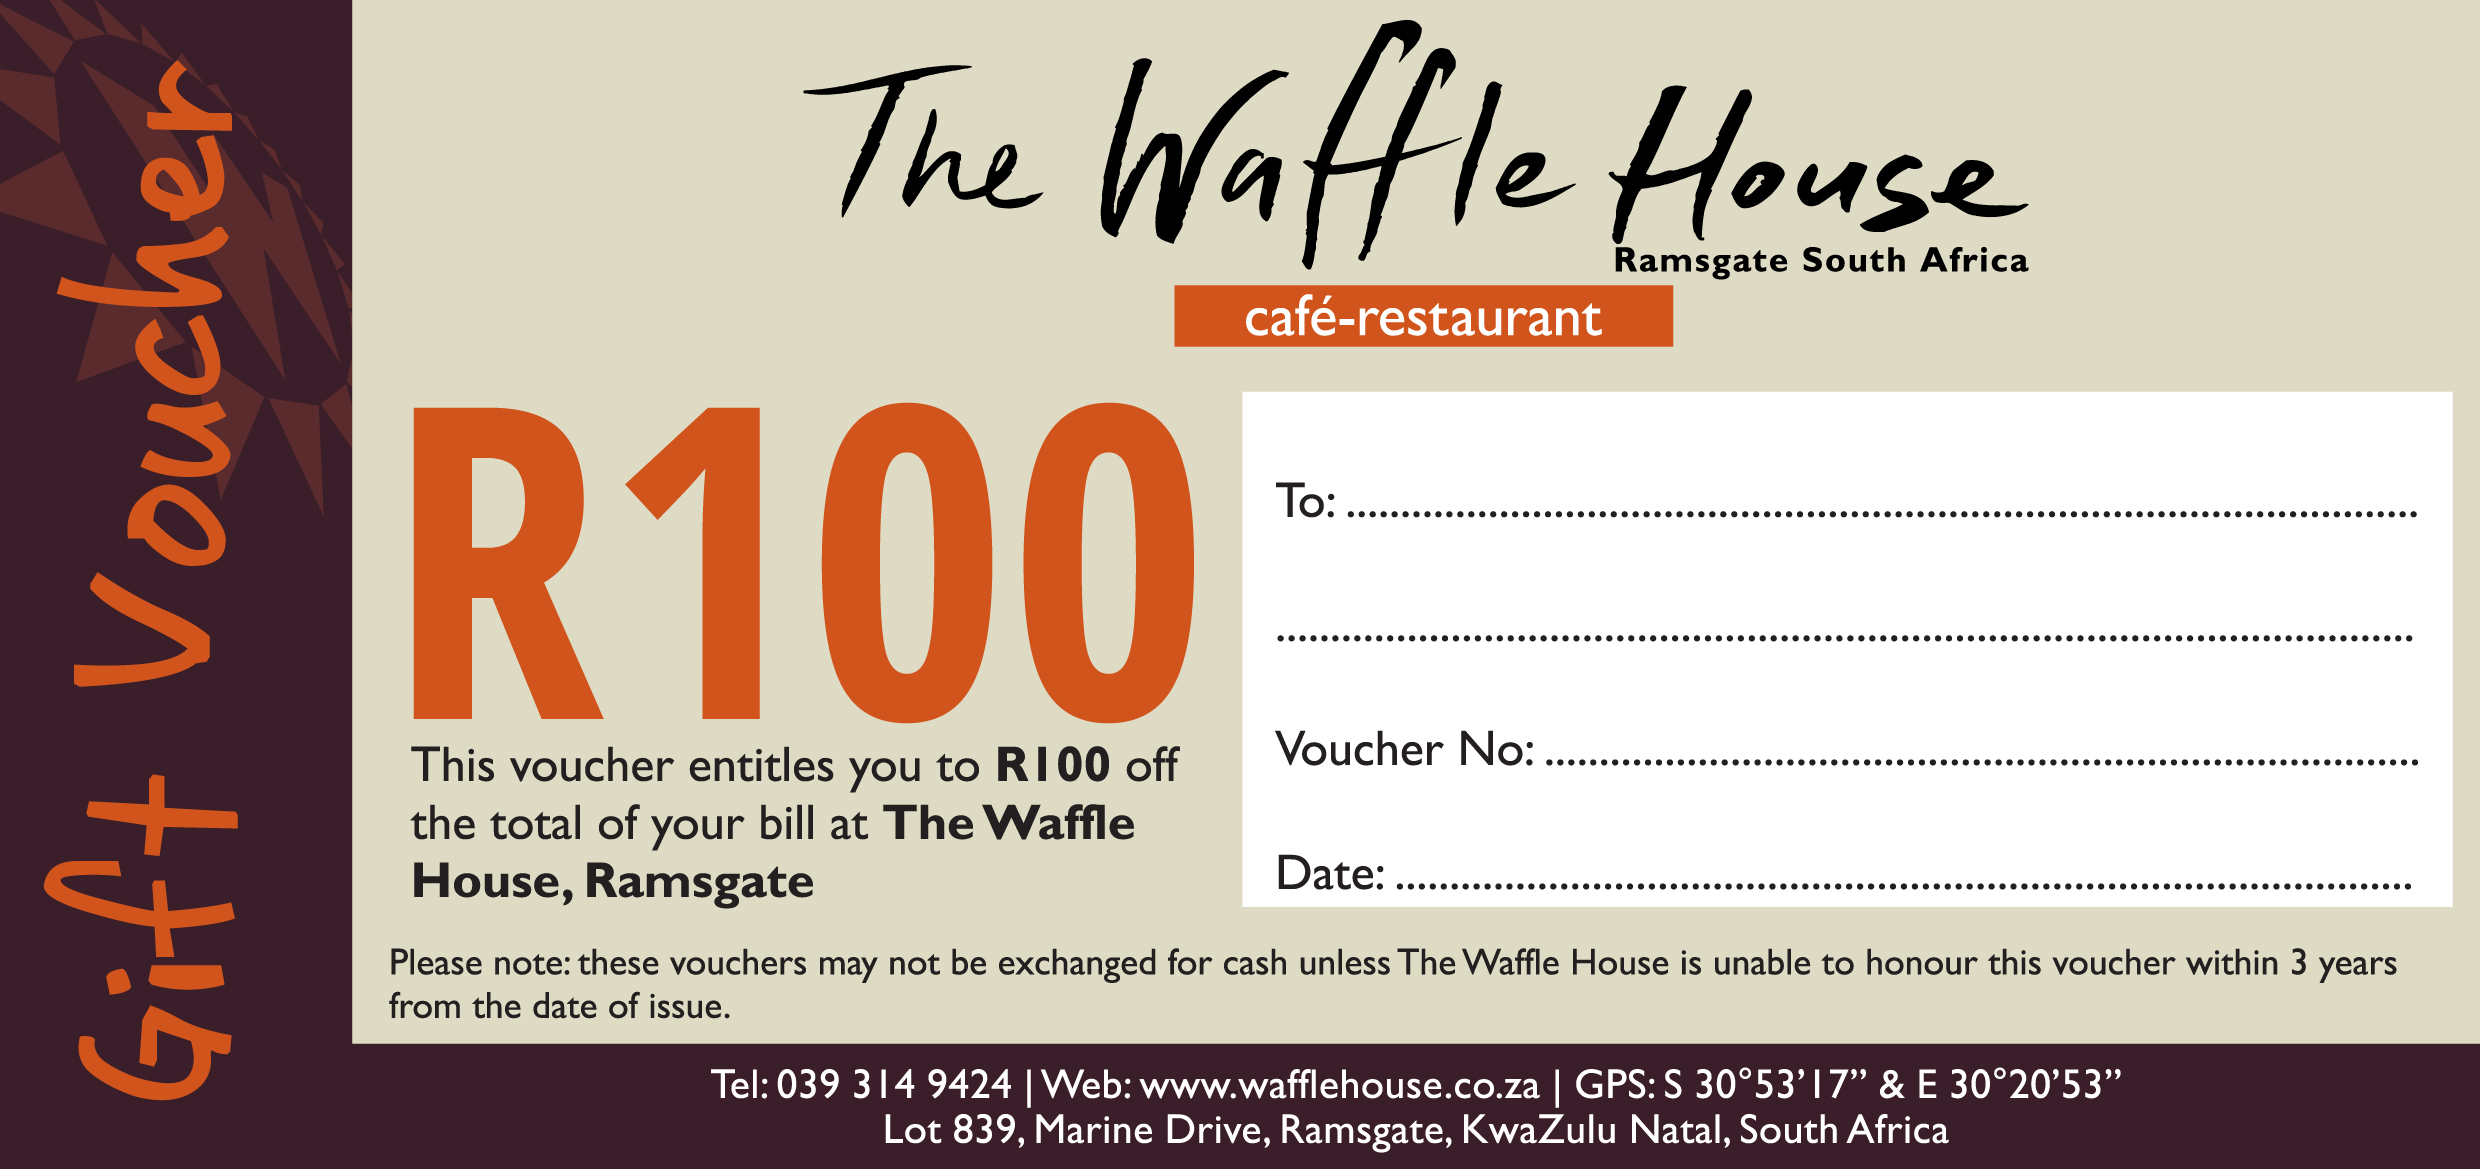 Signup To Become A Waffle House Regular. Are you a Waffle House Regular? Make it official by joining our e-mail club to get coupons, news and other fun stuff in your inbox! To join our Regulars Club, please complete the information below and click 'Sign Up'.